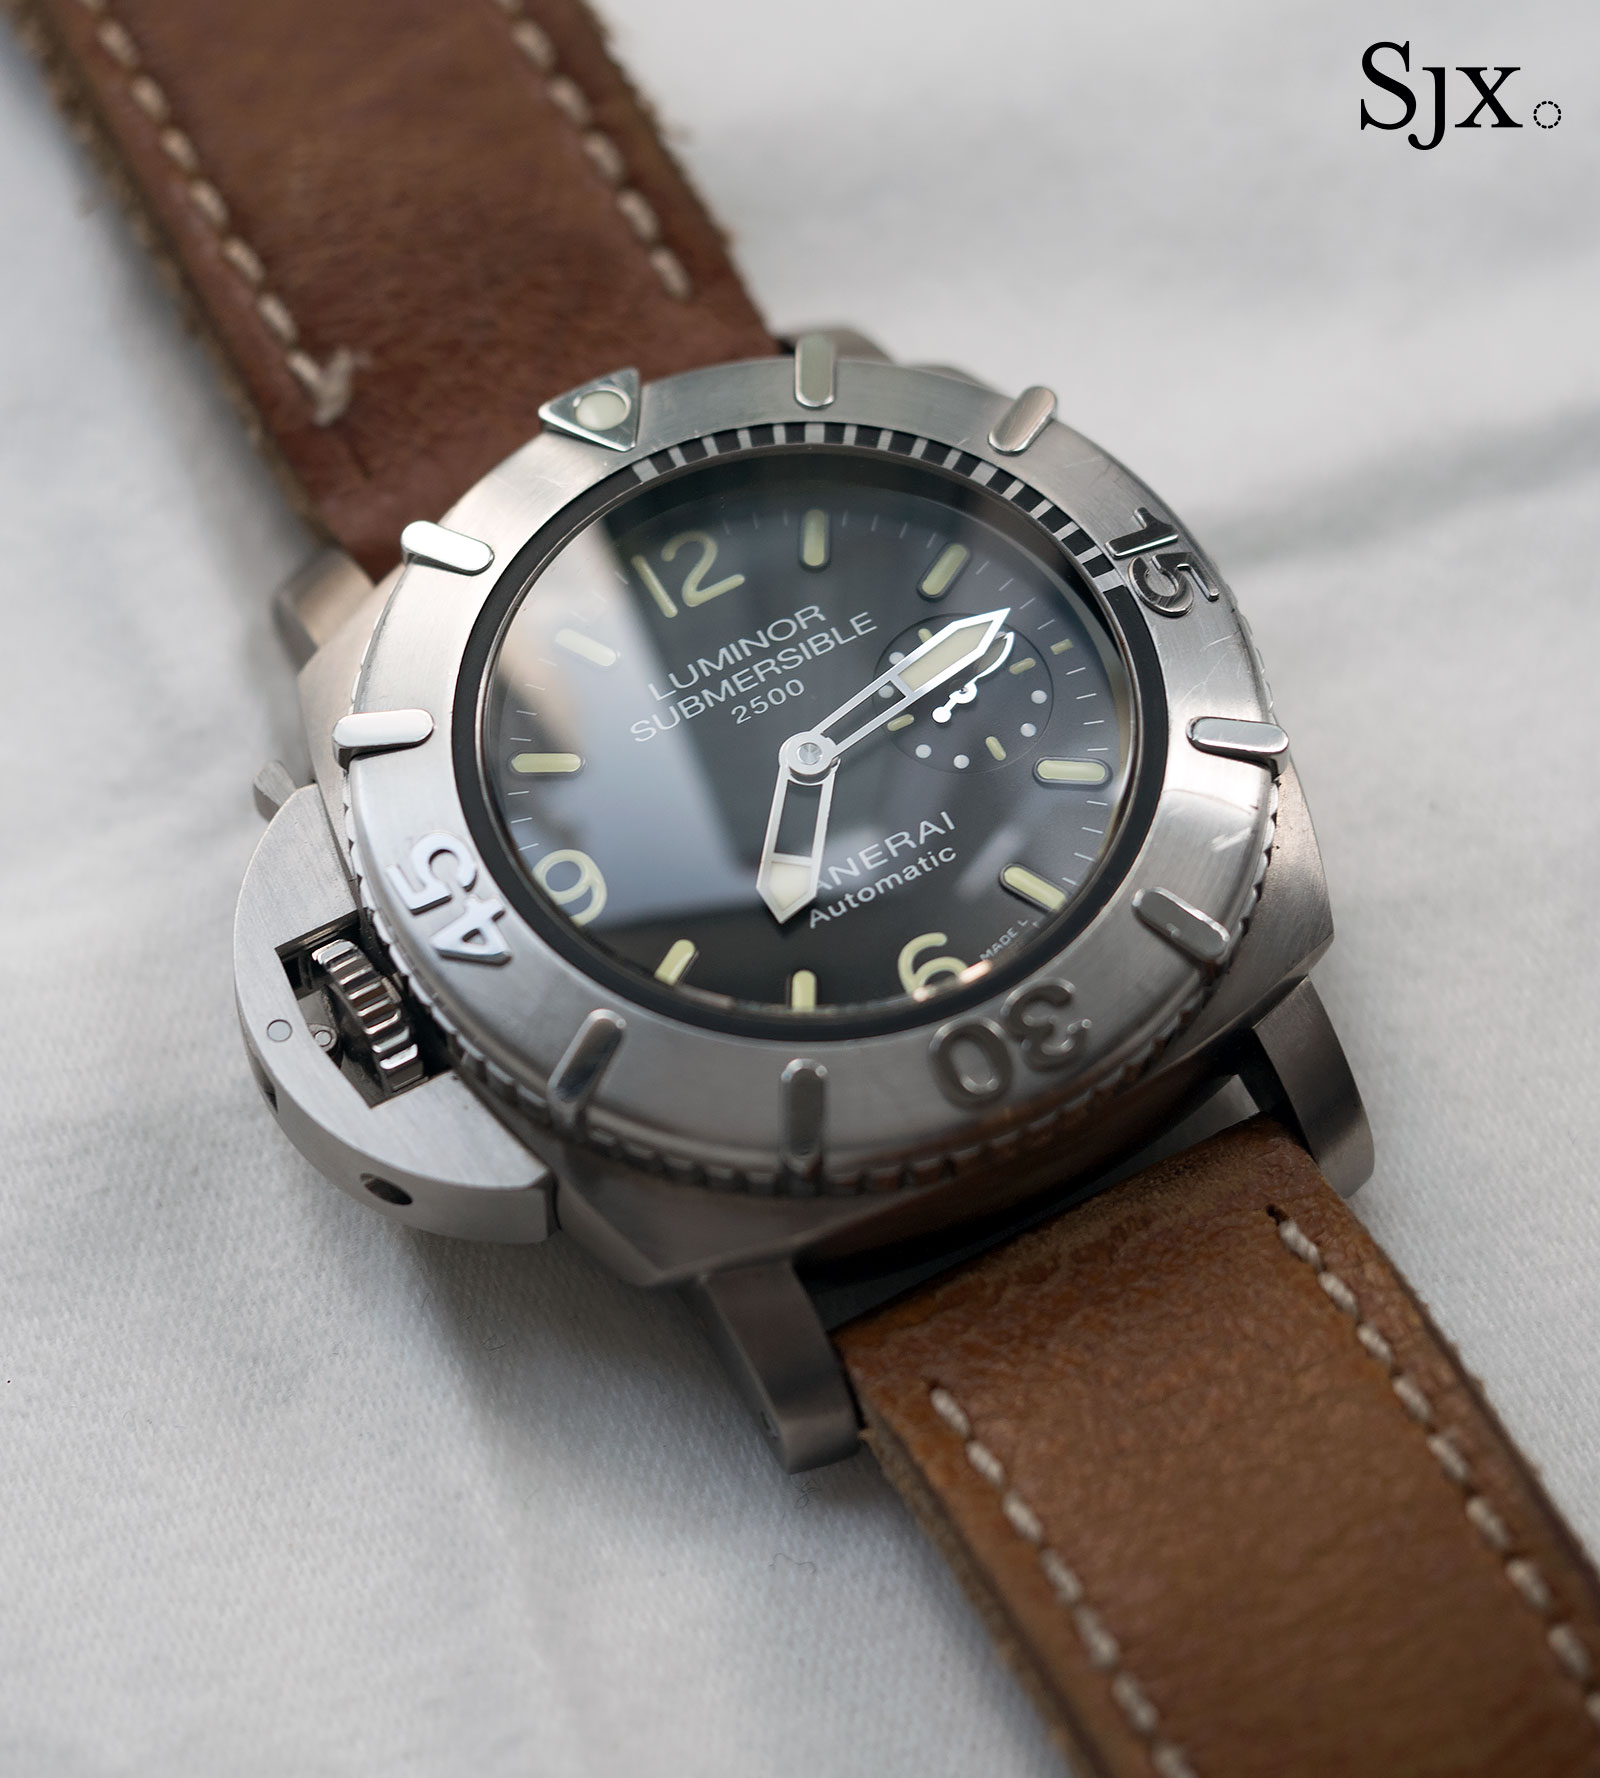 Panerai Submersible 2500 Destro Chronopassion PAM358-1